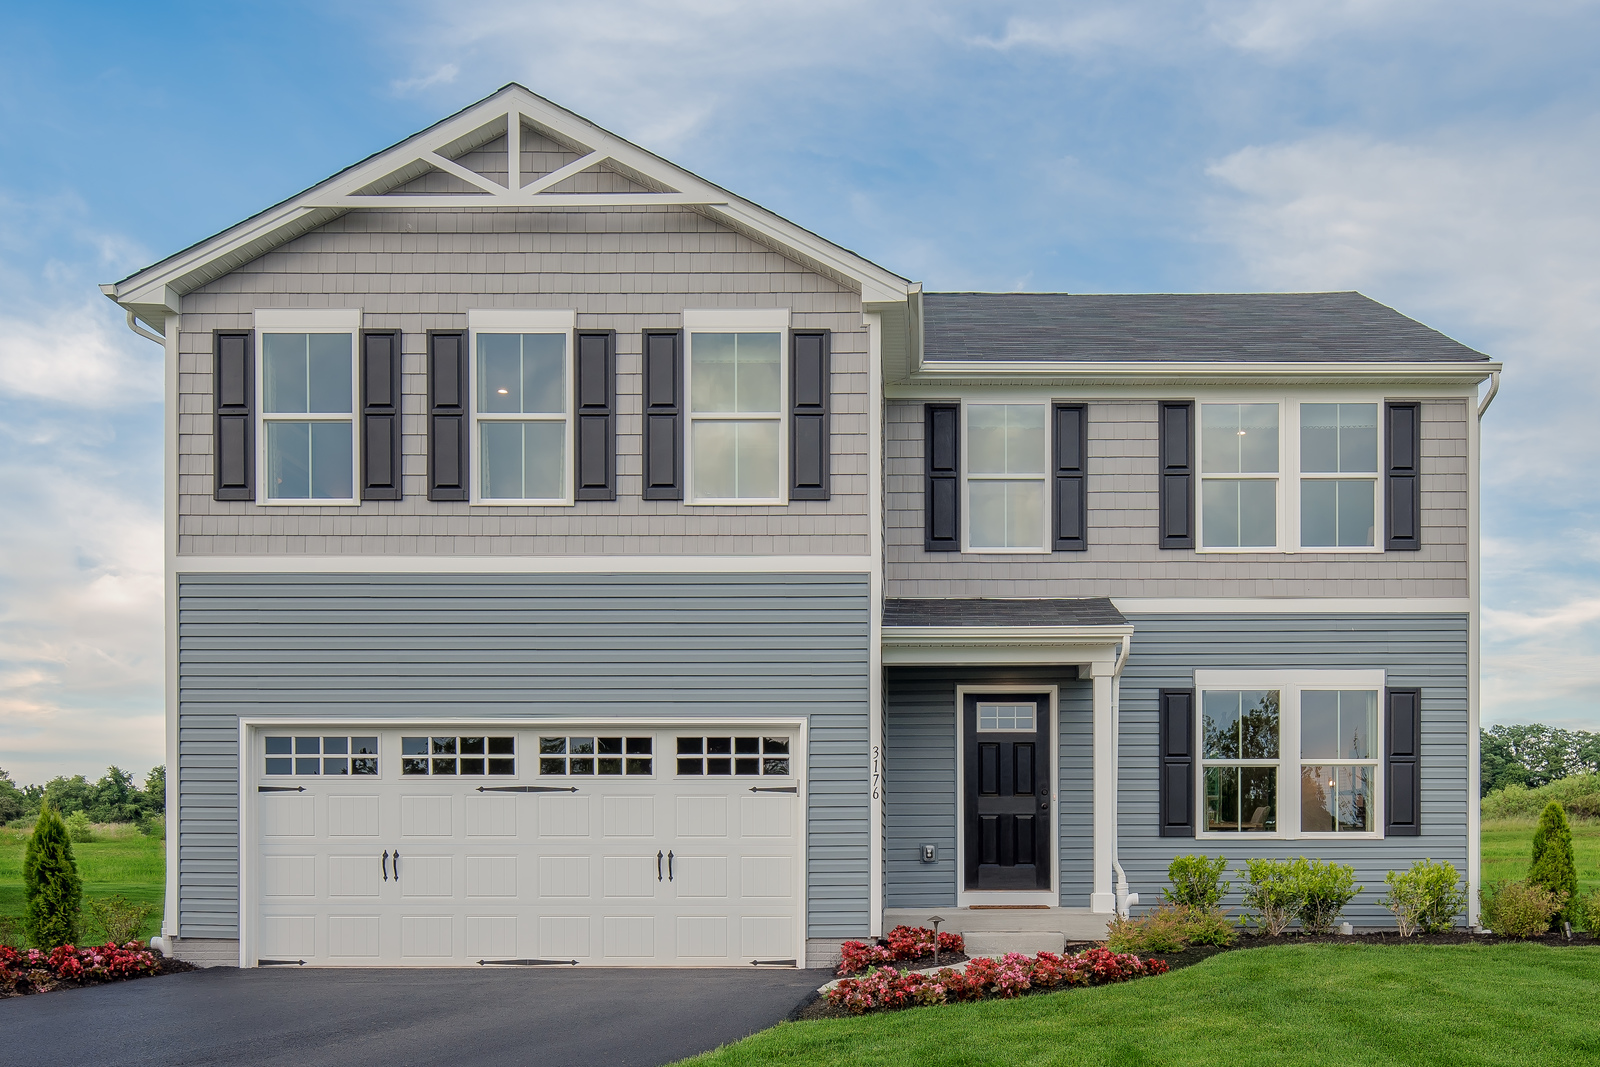 New Homes For Sale At Villages Of Sterling Green In Xenia Oh Within